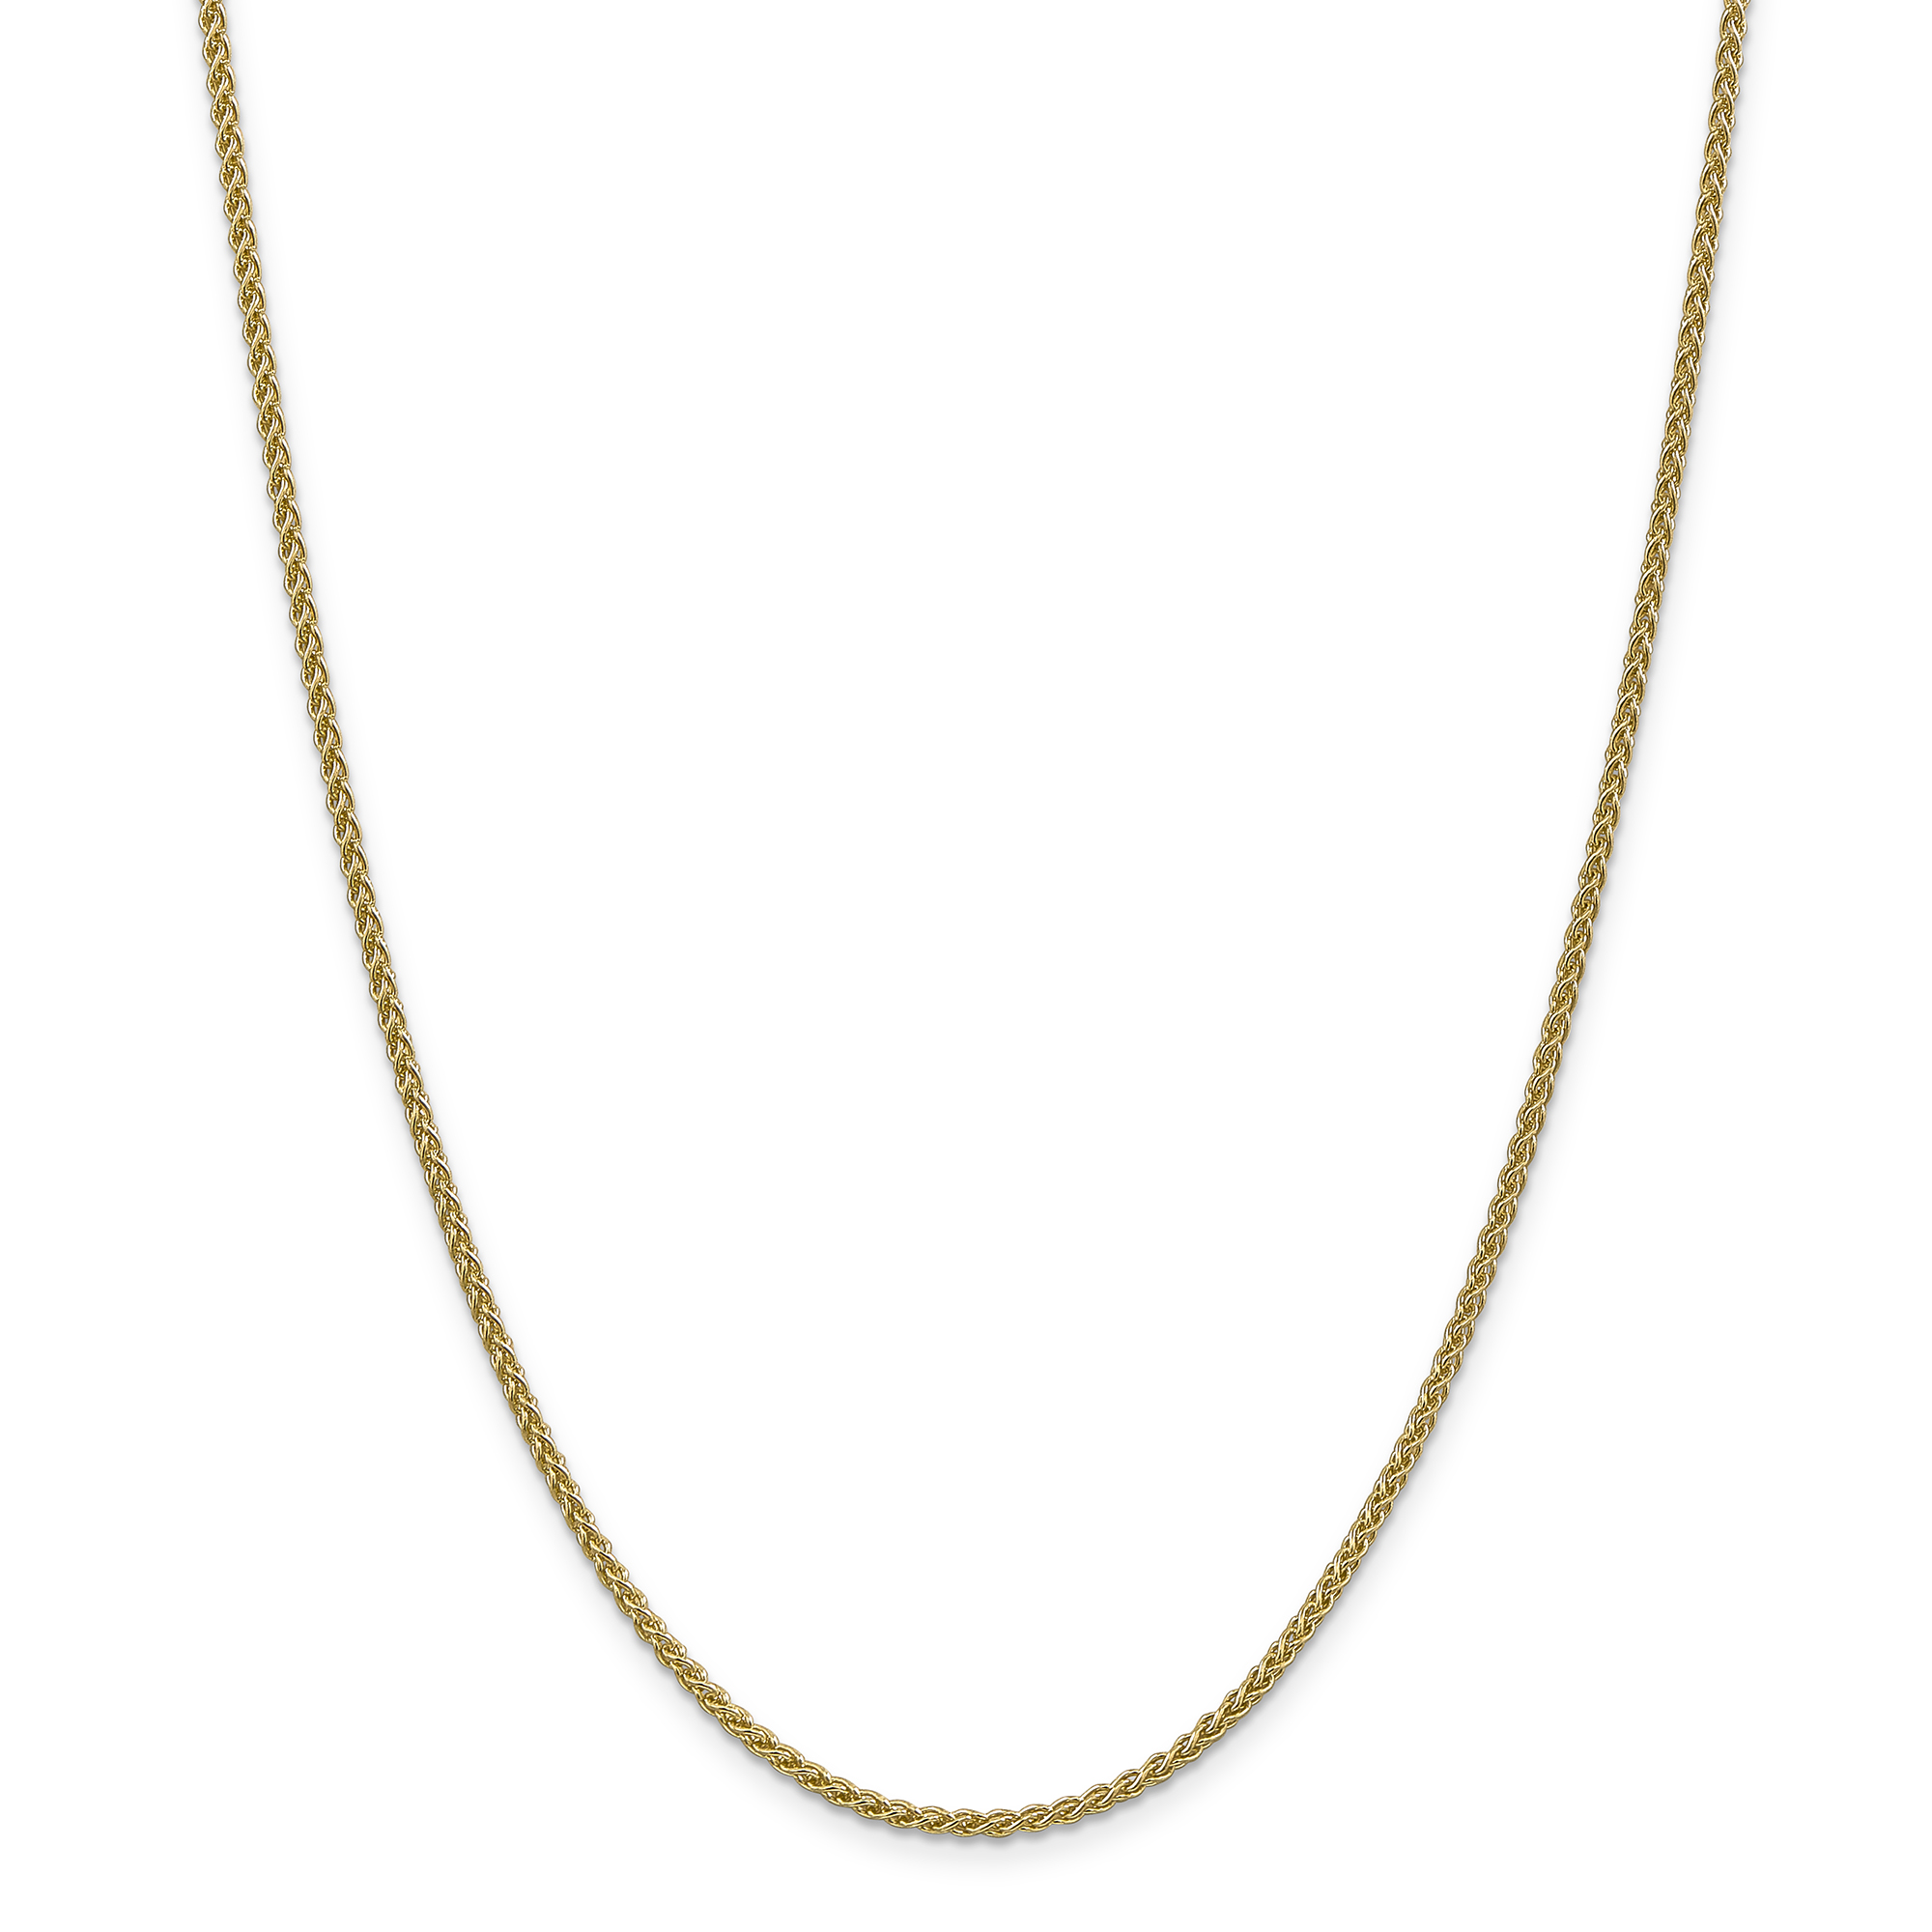 14k Yellow Gold 2mm Spiga Chain Necklace 30 Inch Pendant Charm Wheat Fine Jewelry Gifts For Women For Her - image 5 of 5